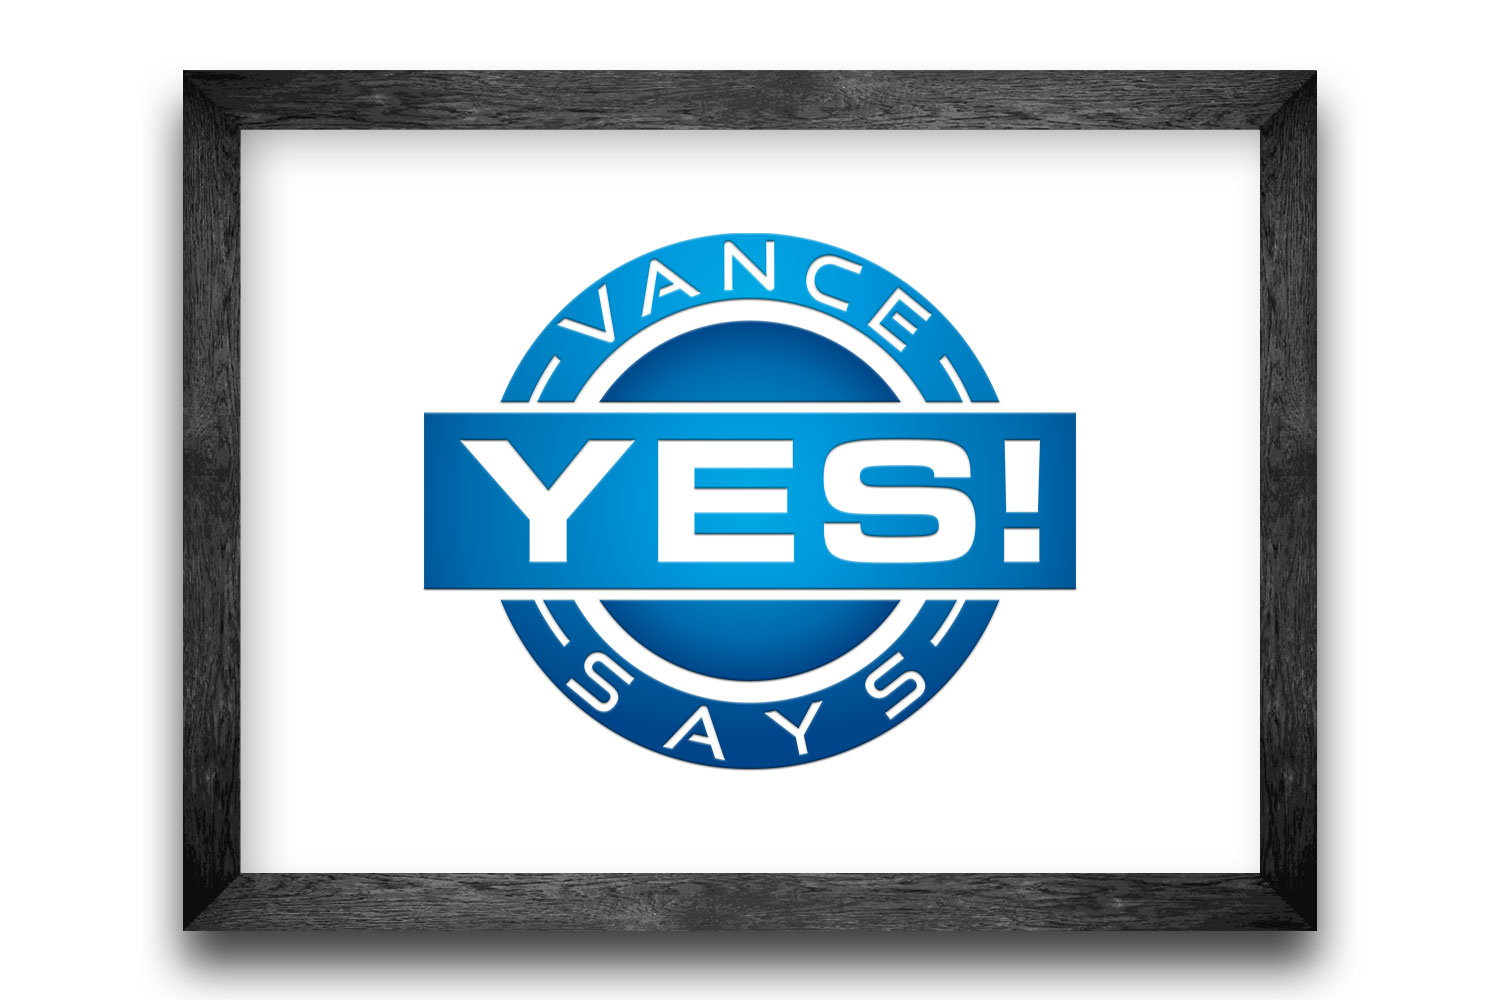 Vance Says Yes Badge